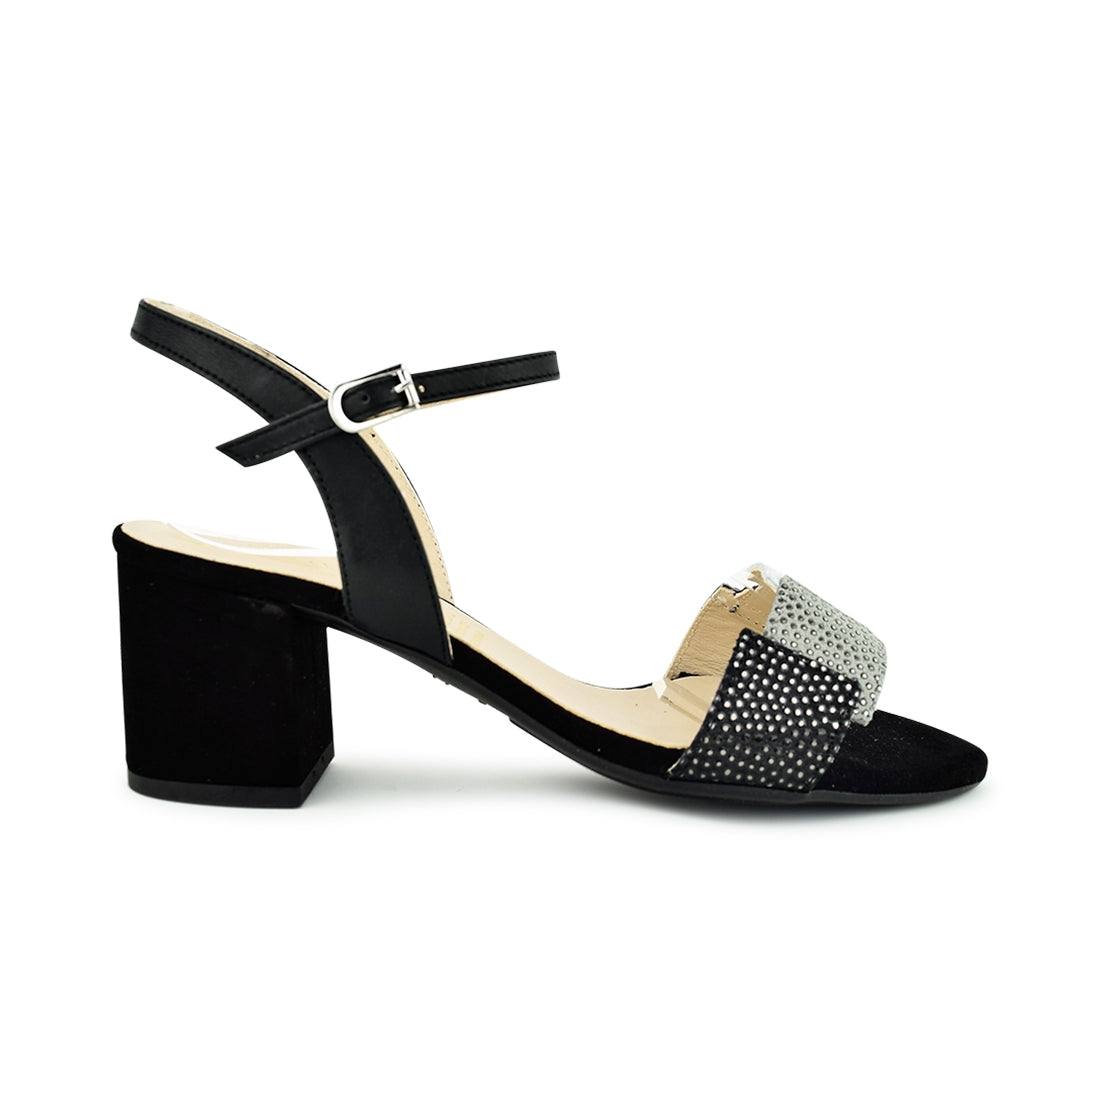 CALLIE - Quait Sandal Black Multi Suede